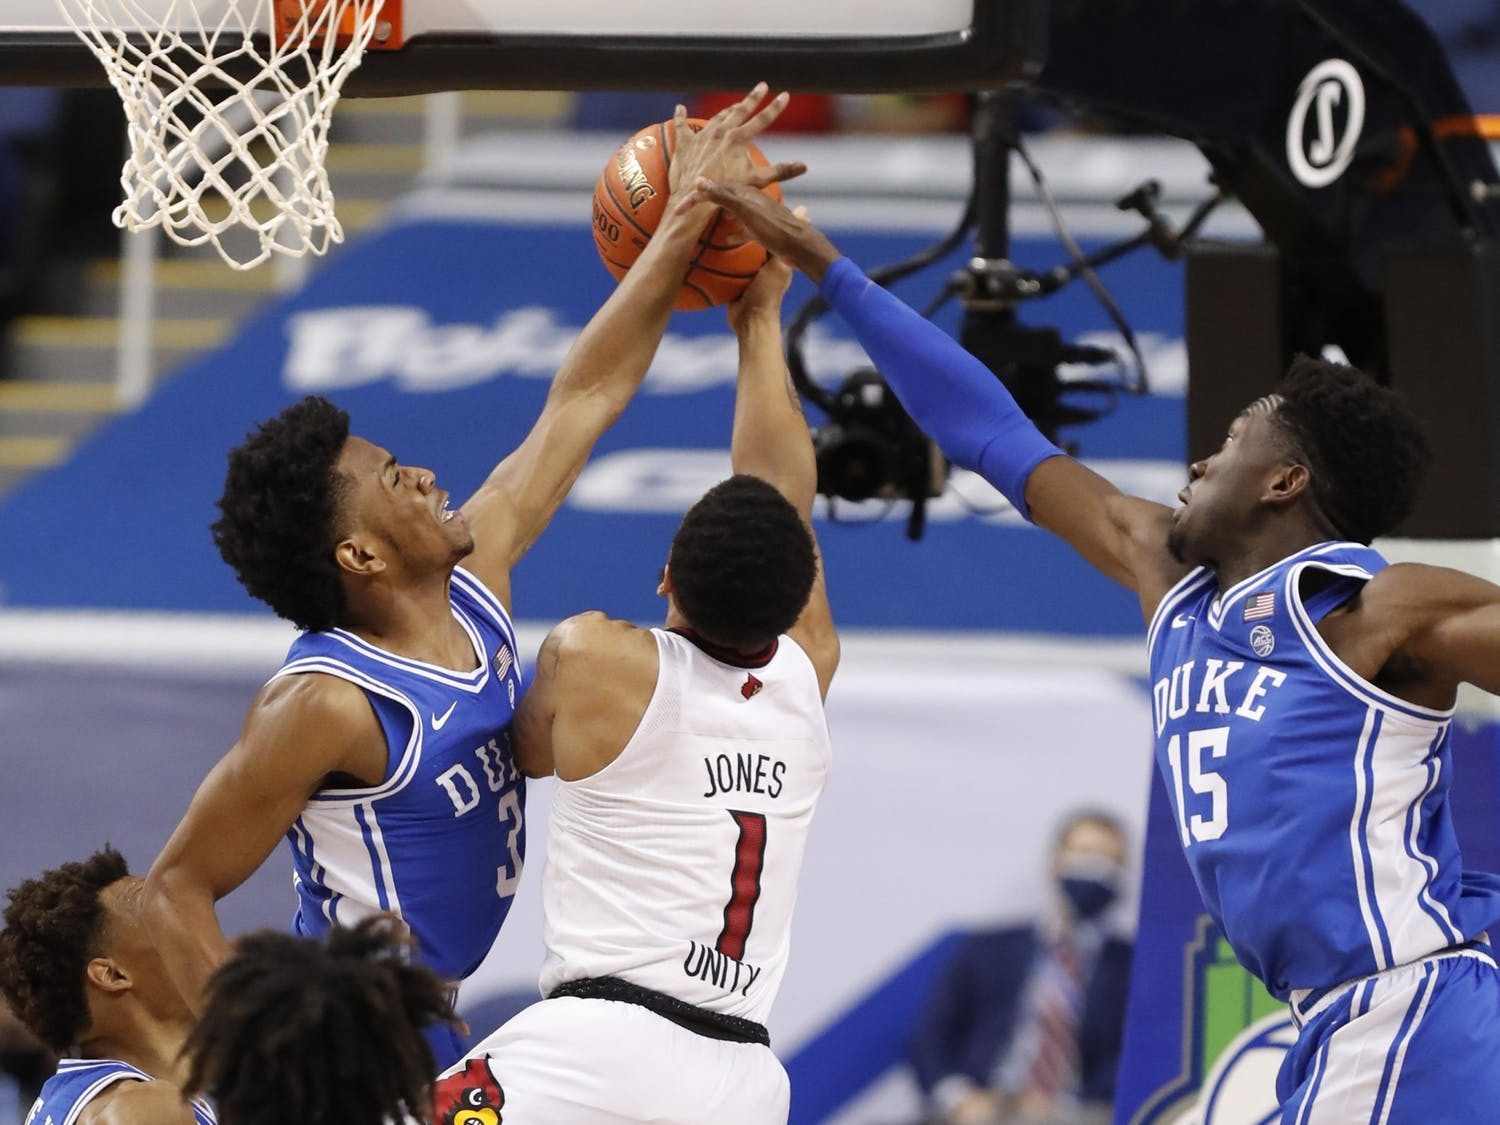 One of the biggest keys to Duke's win Wednesday was keeping Louisville guard Carlik Jones out of the paint.